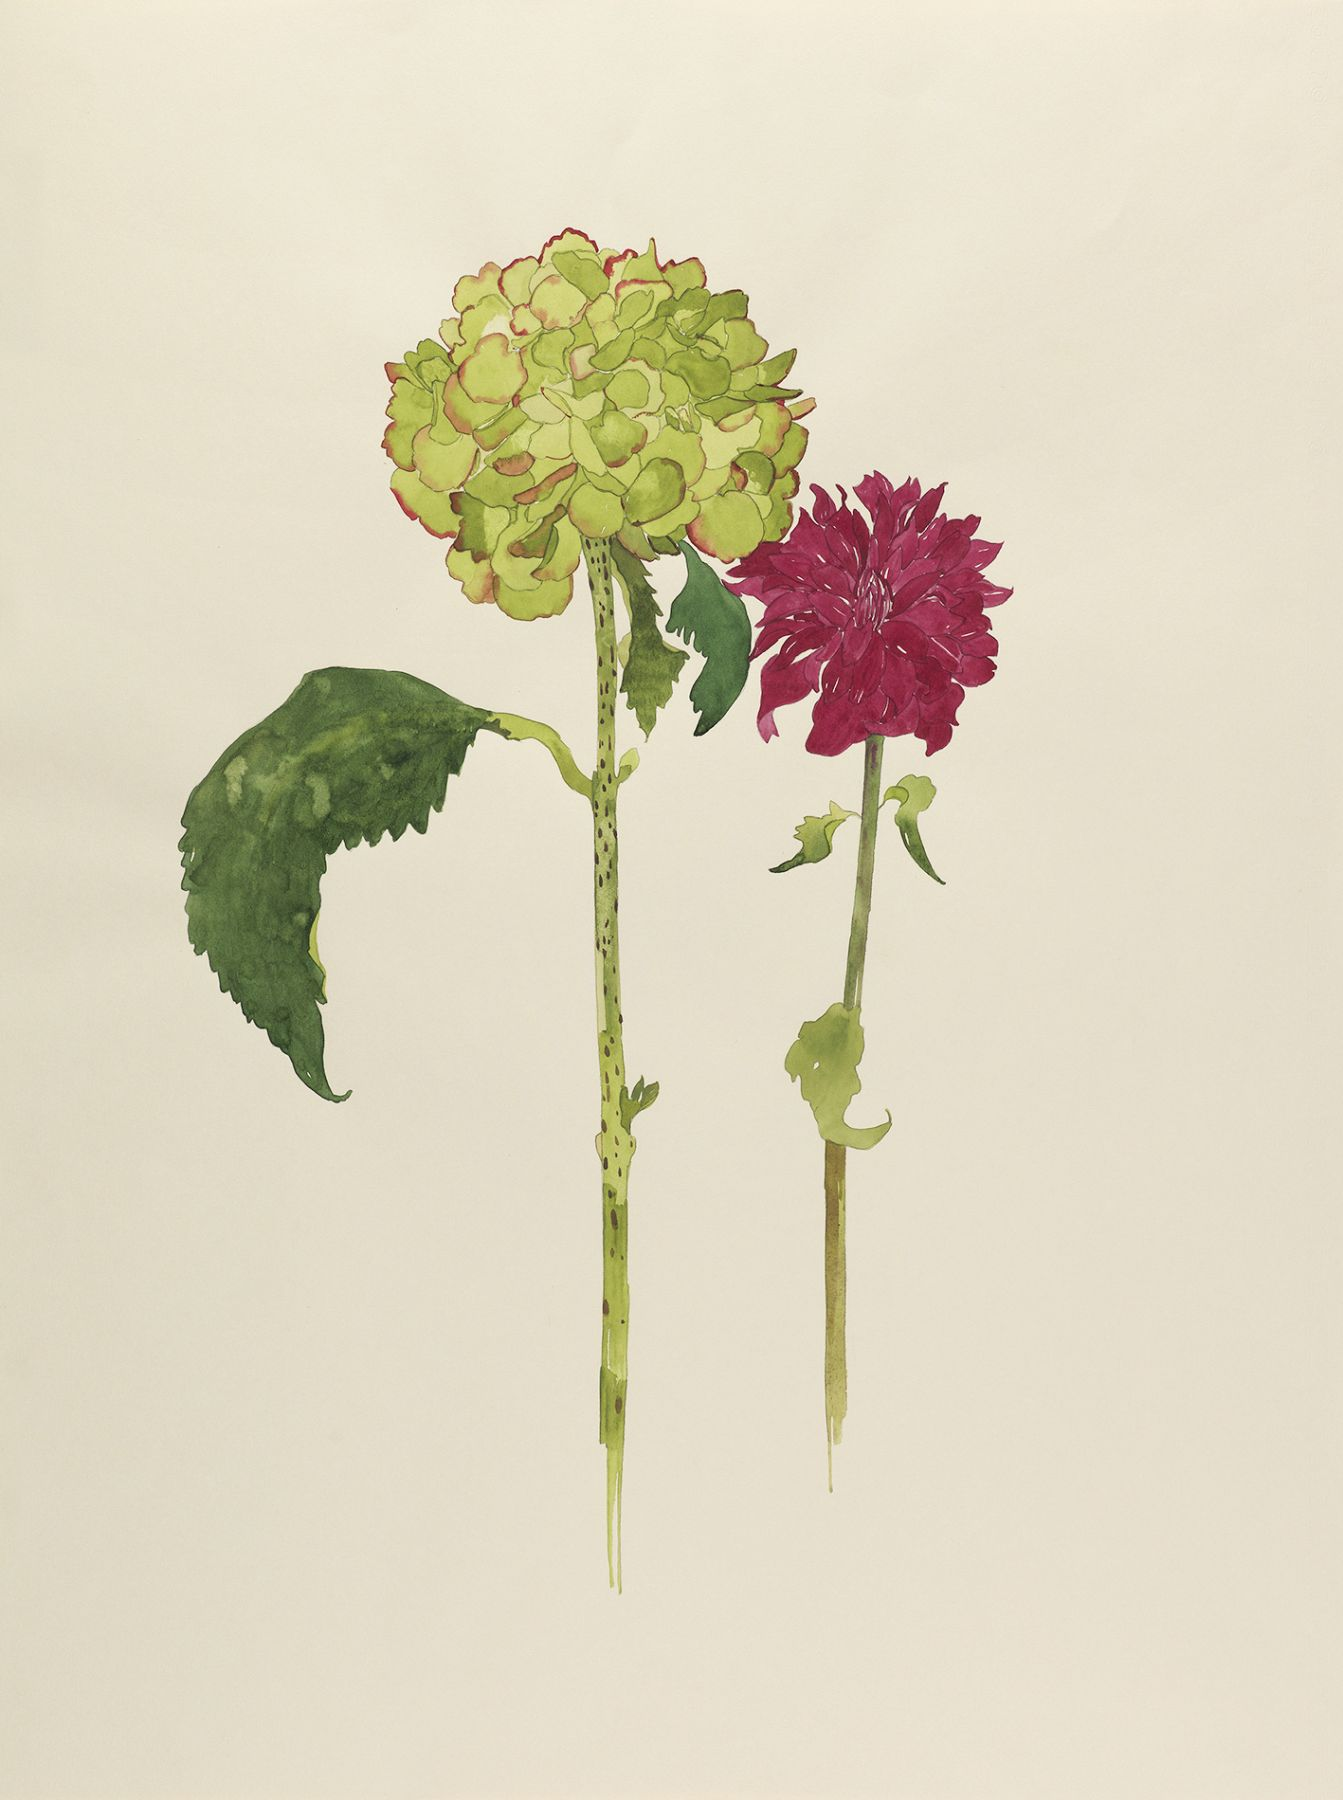 Pamela Sztybel, Hydrangea with Dahlia, 2017, Watercolor on paper 25 1/2 x 19 1/2 inches